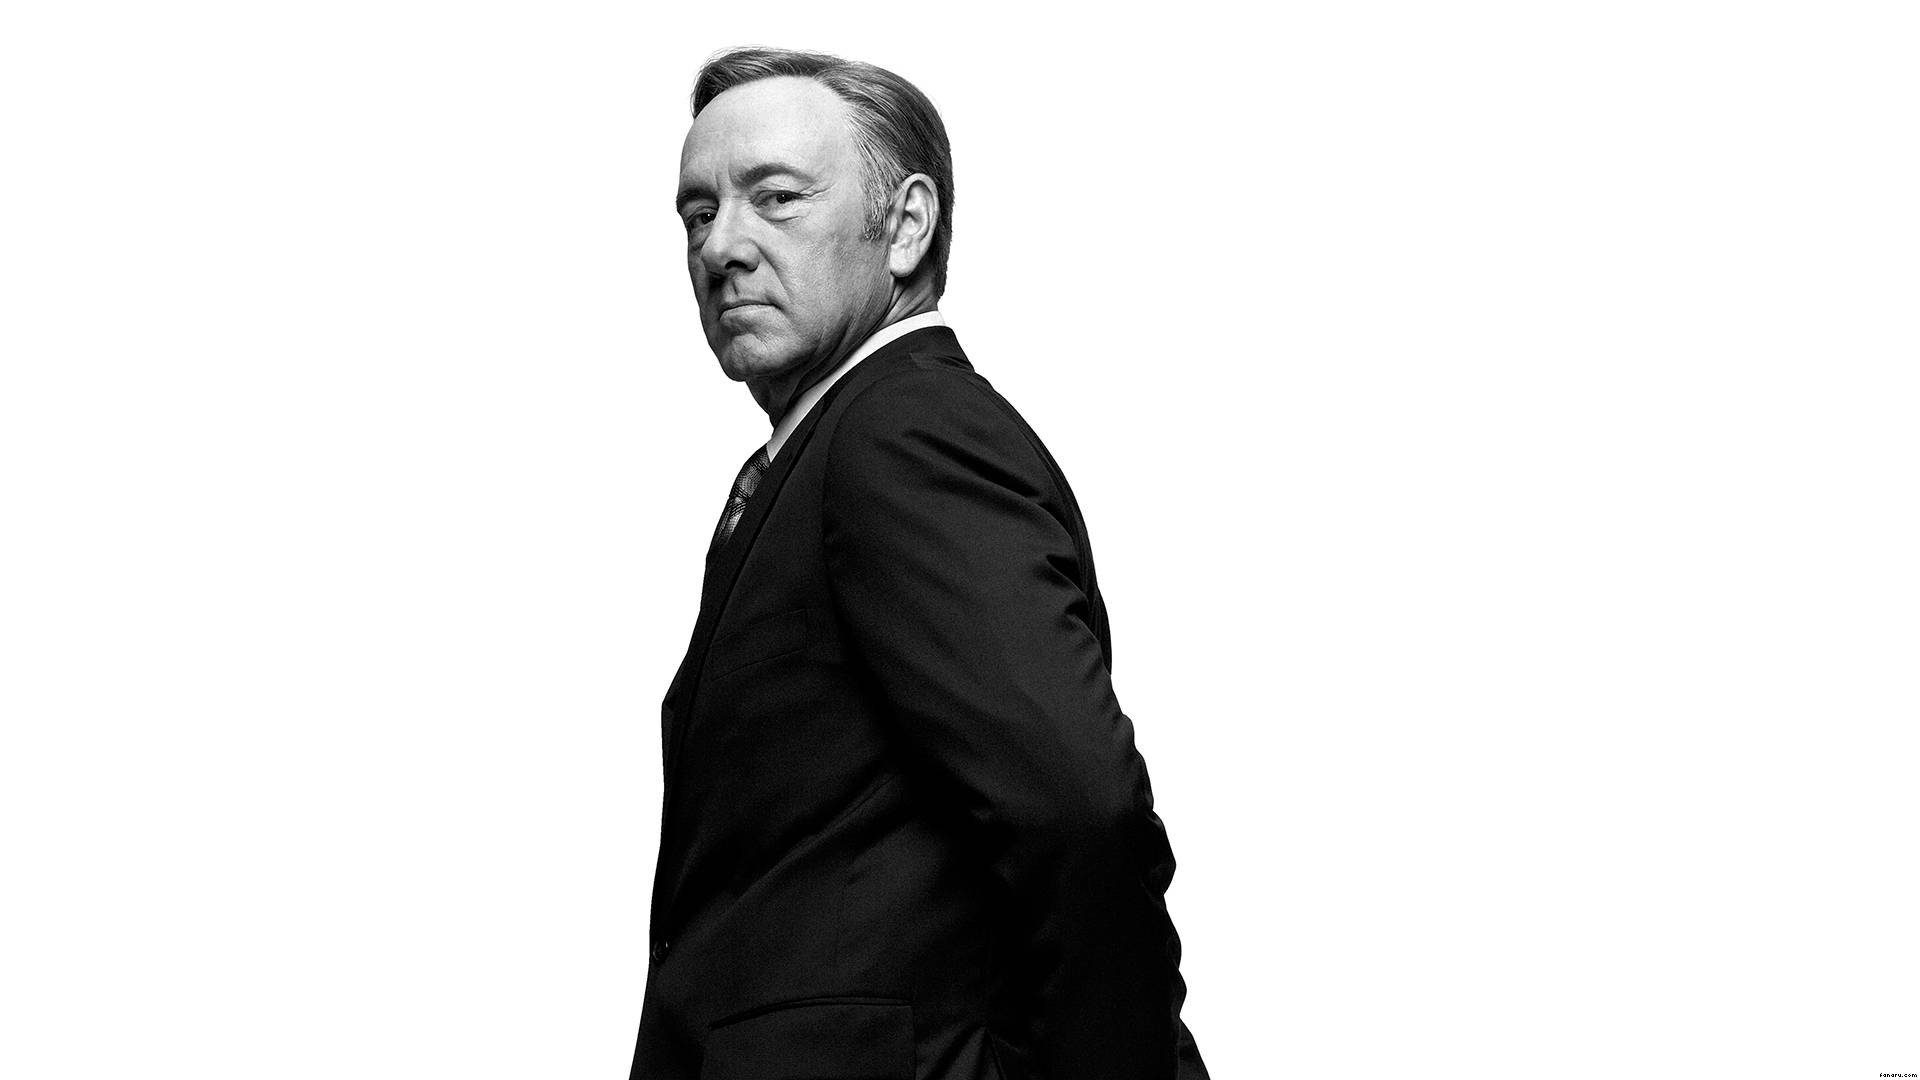 Kevin spacey computer wallpapers wallpics - Spacey wallpaper ...